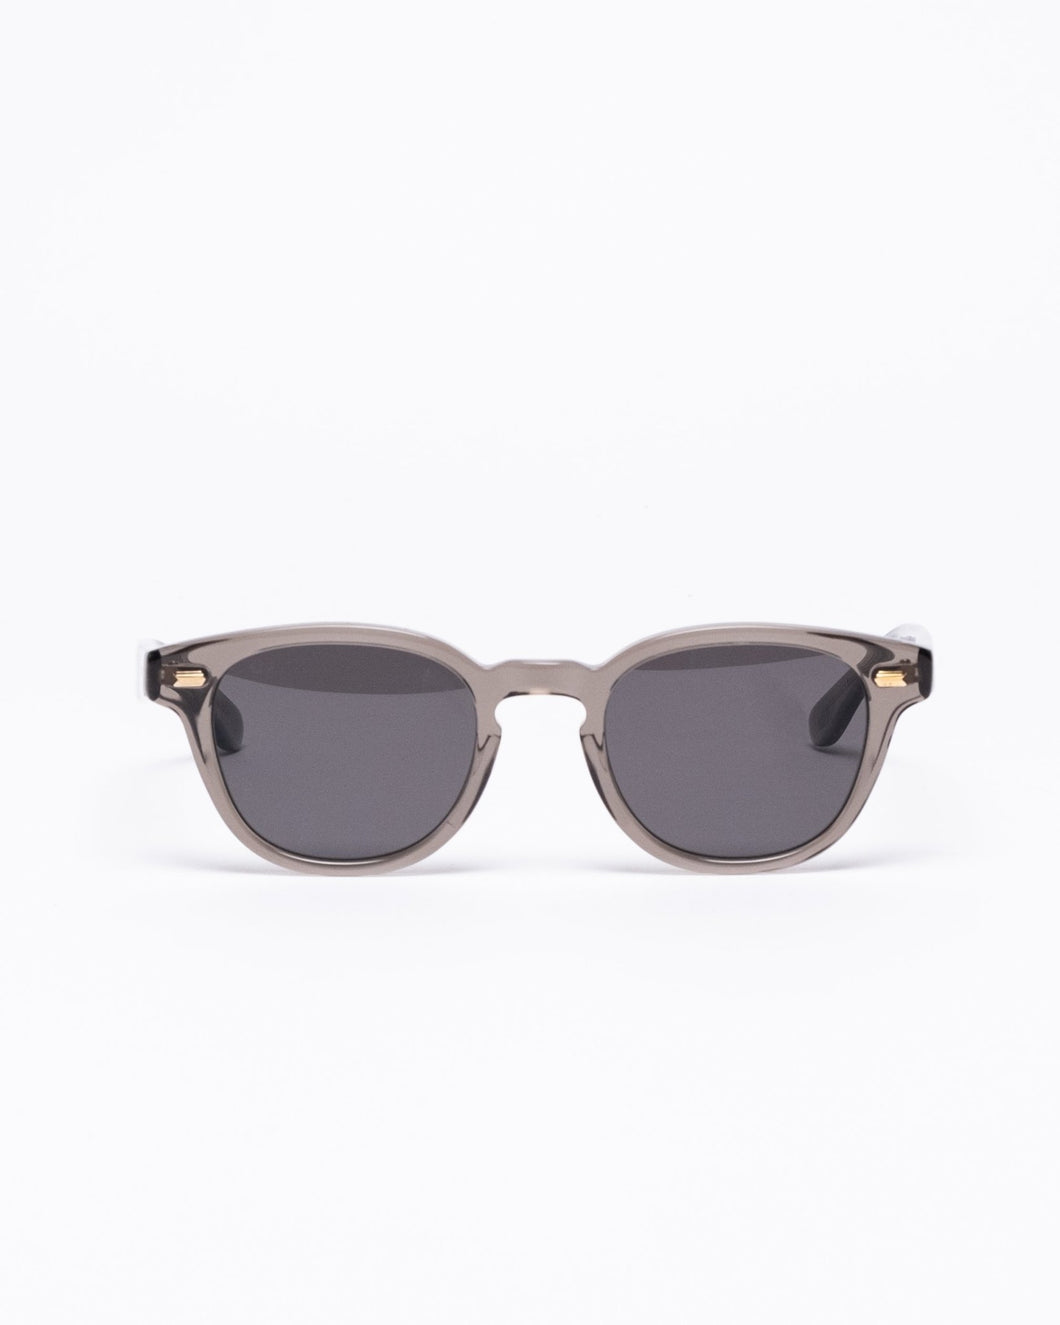 Webb Sunglasses 49 Smoke/Black - Meadow of Malmö